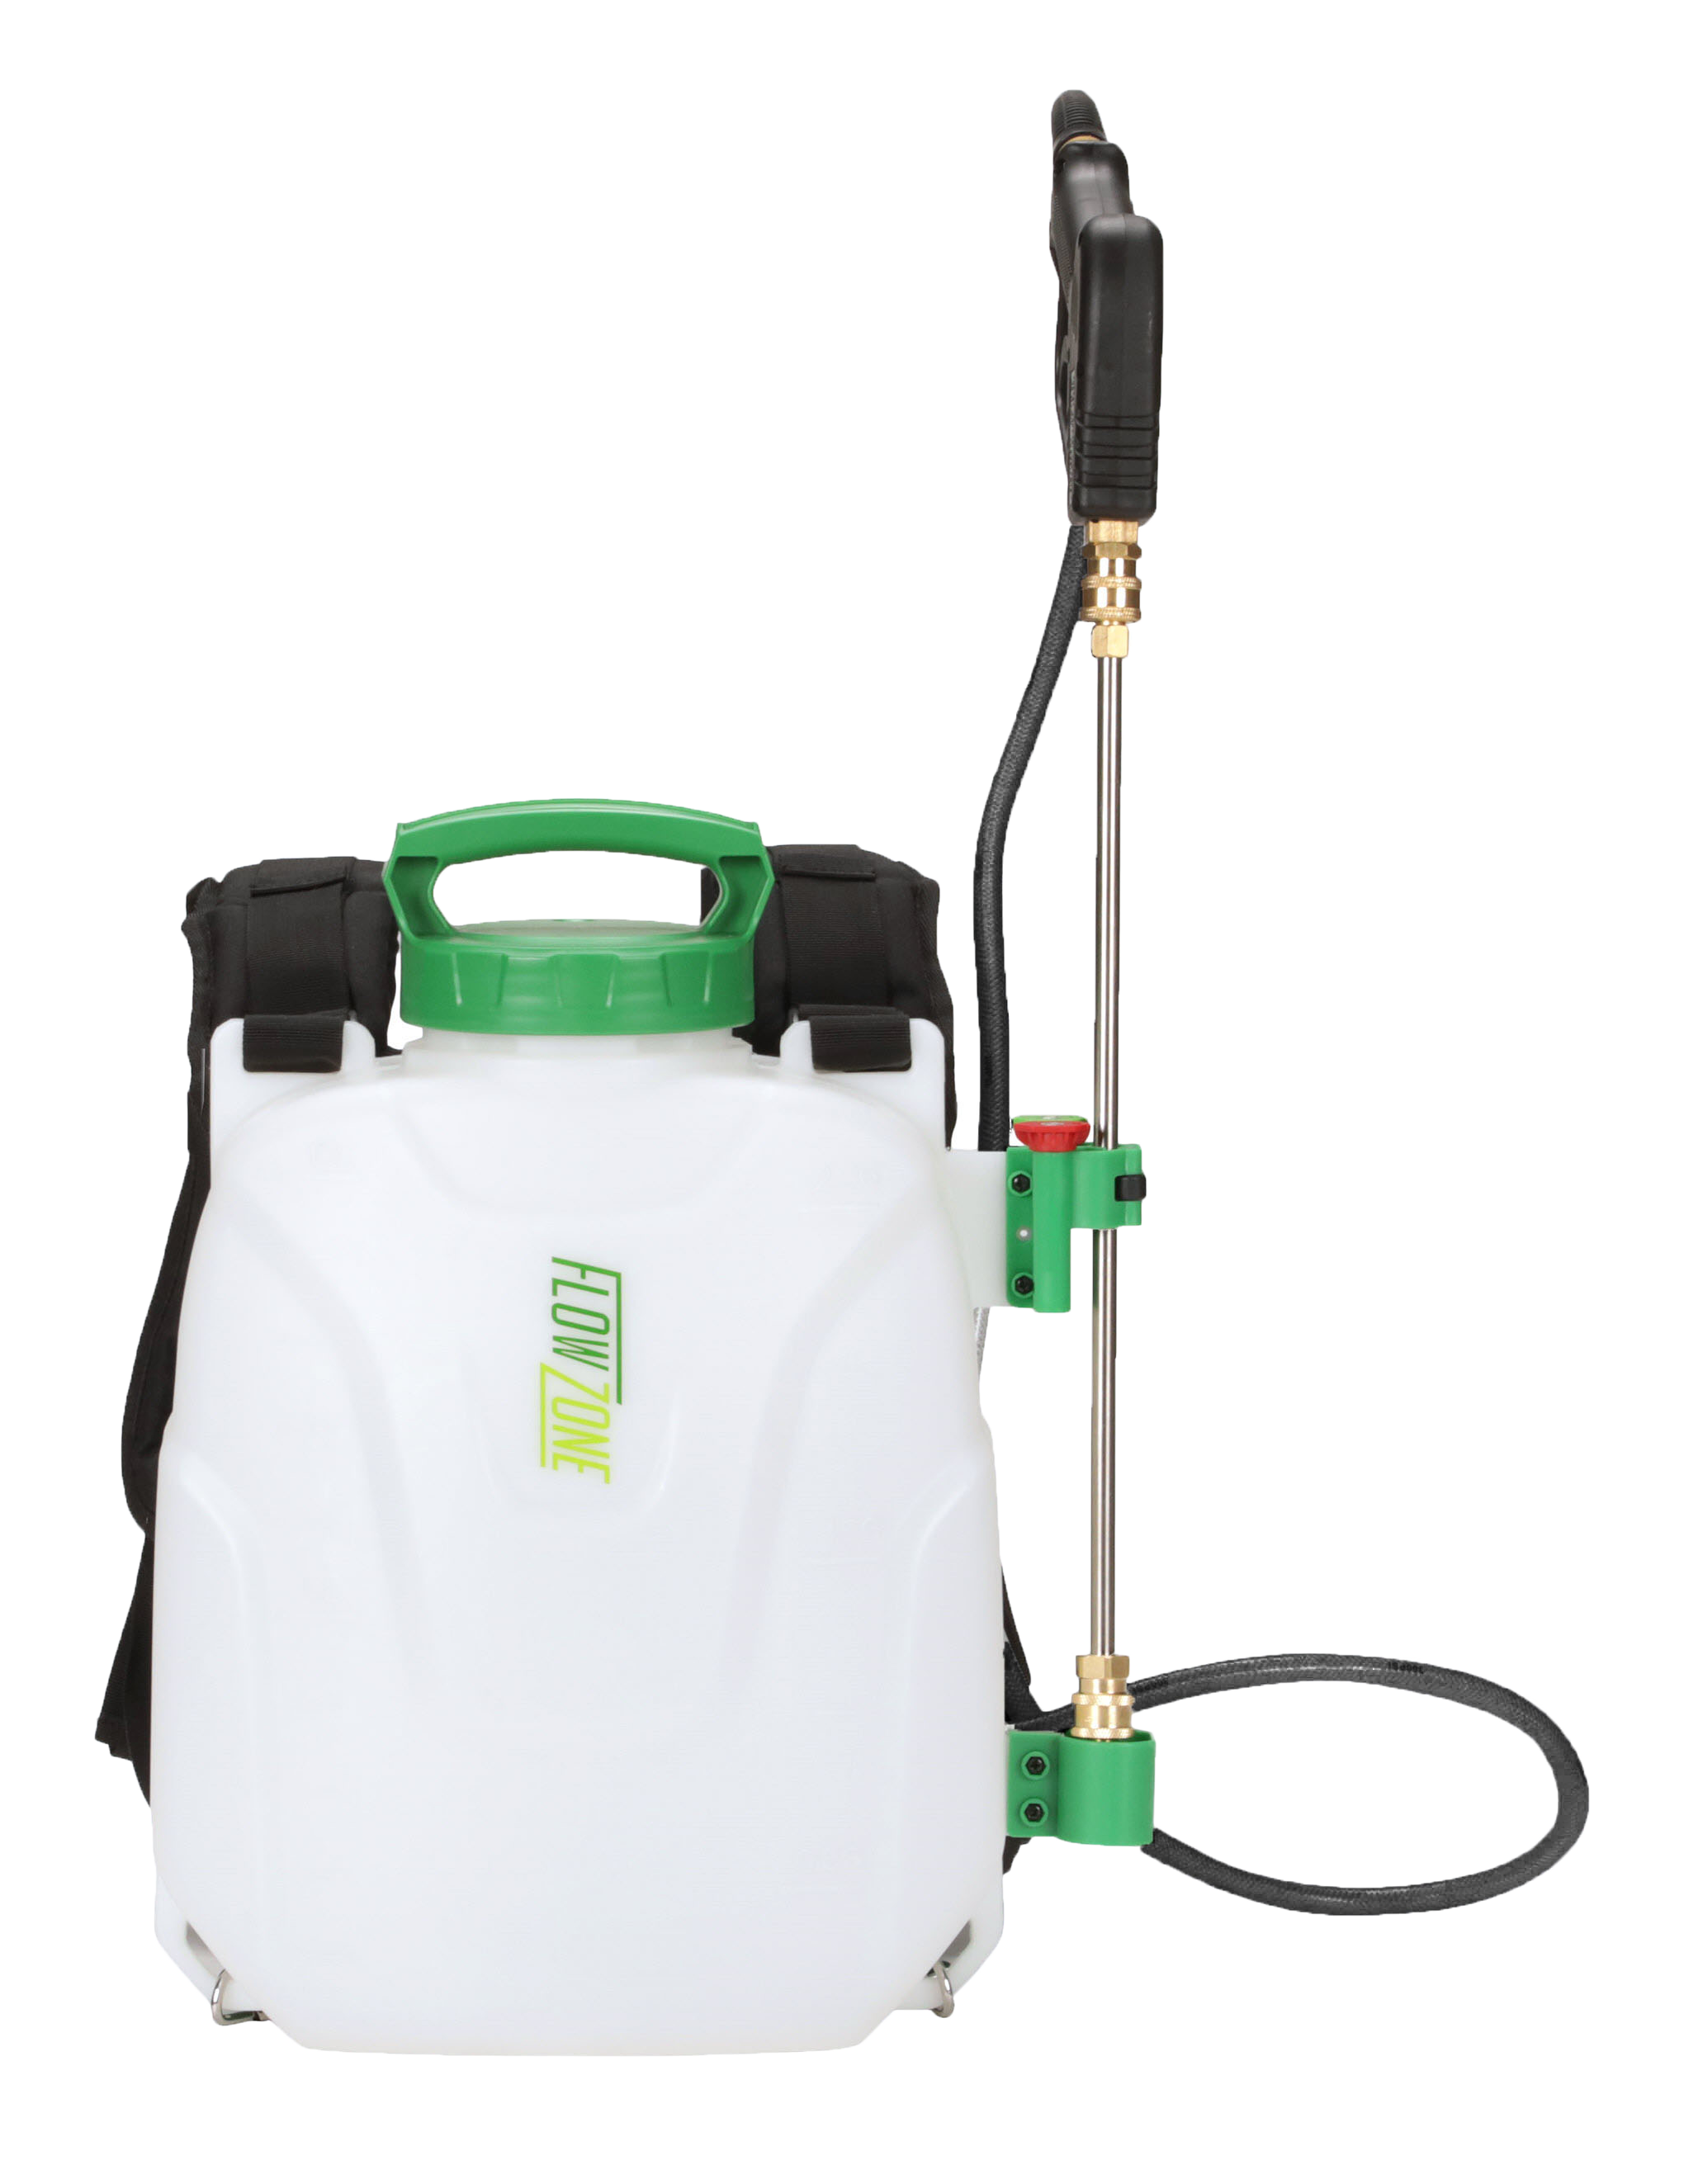 Front view of FlowZone Storm 2.5 battery powered backpack sprayer